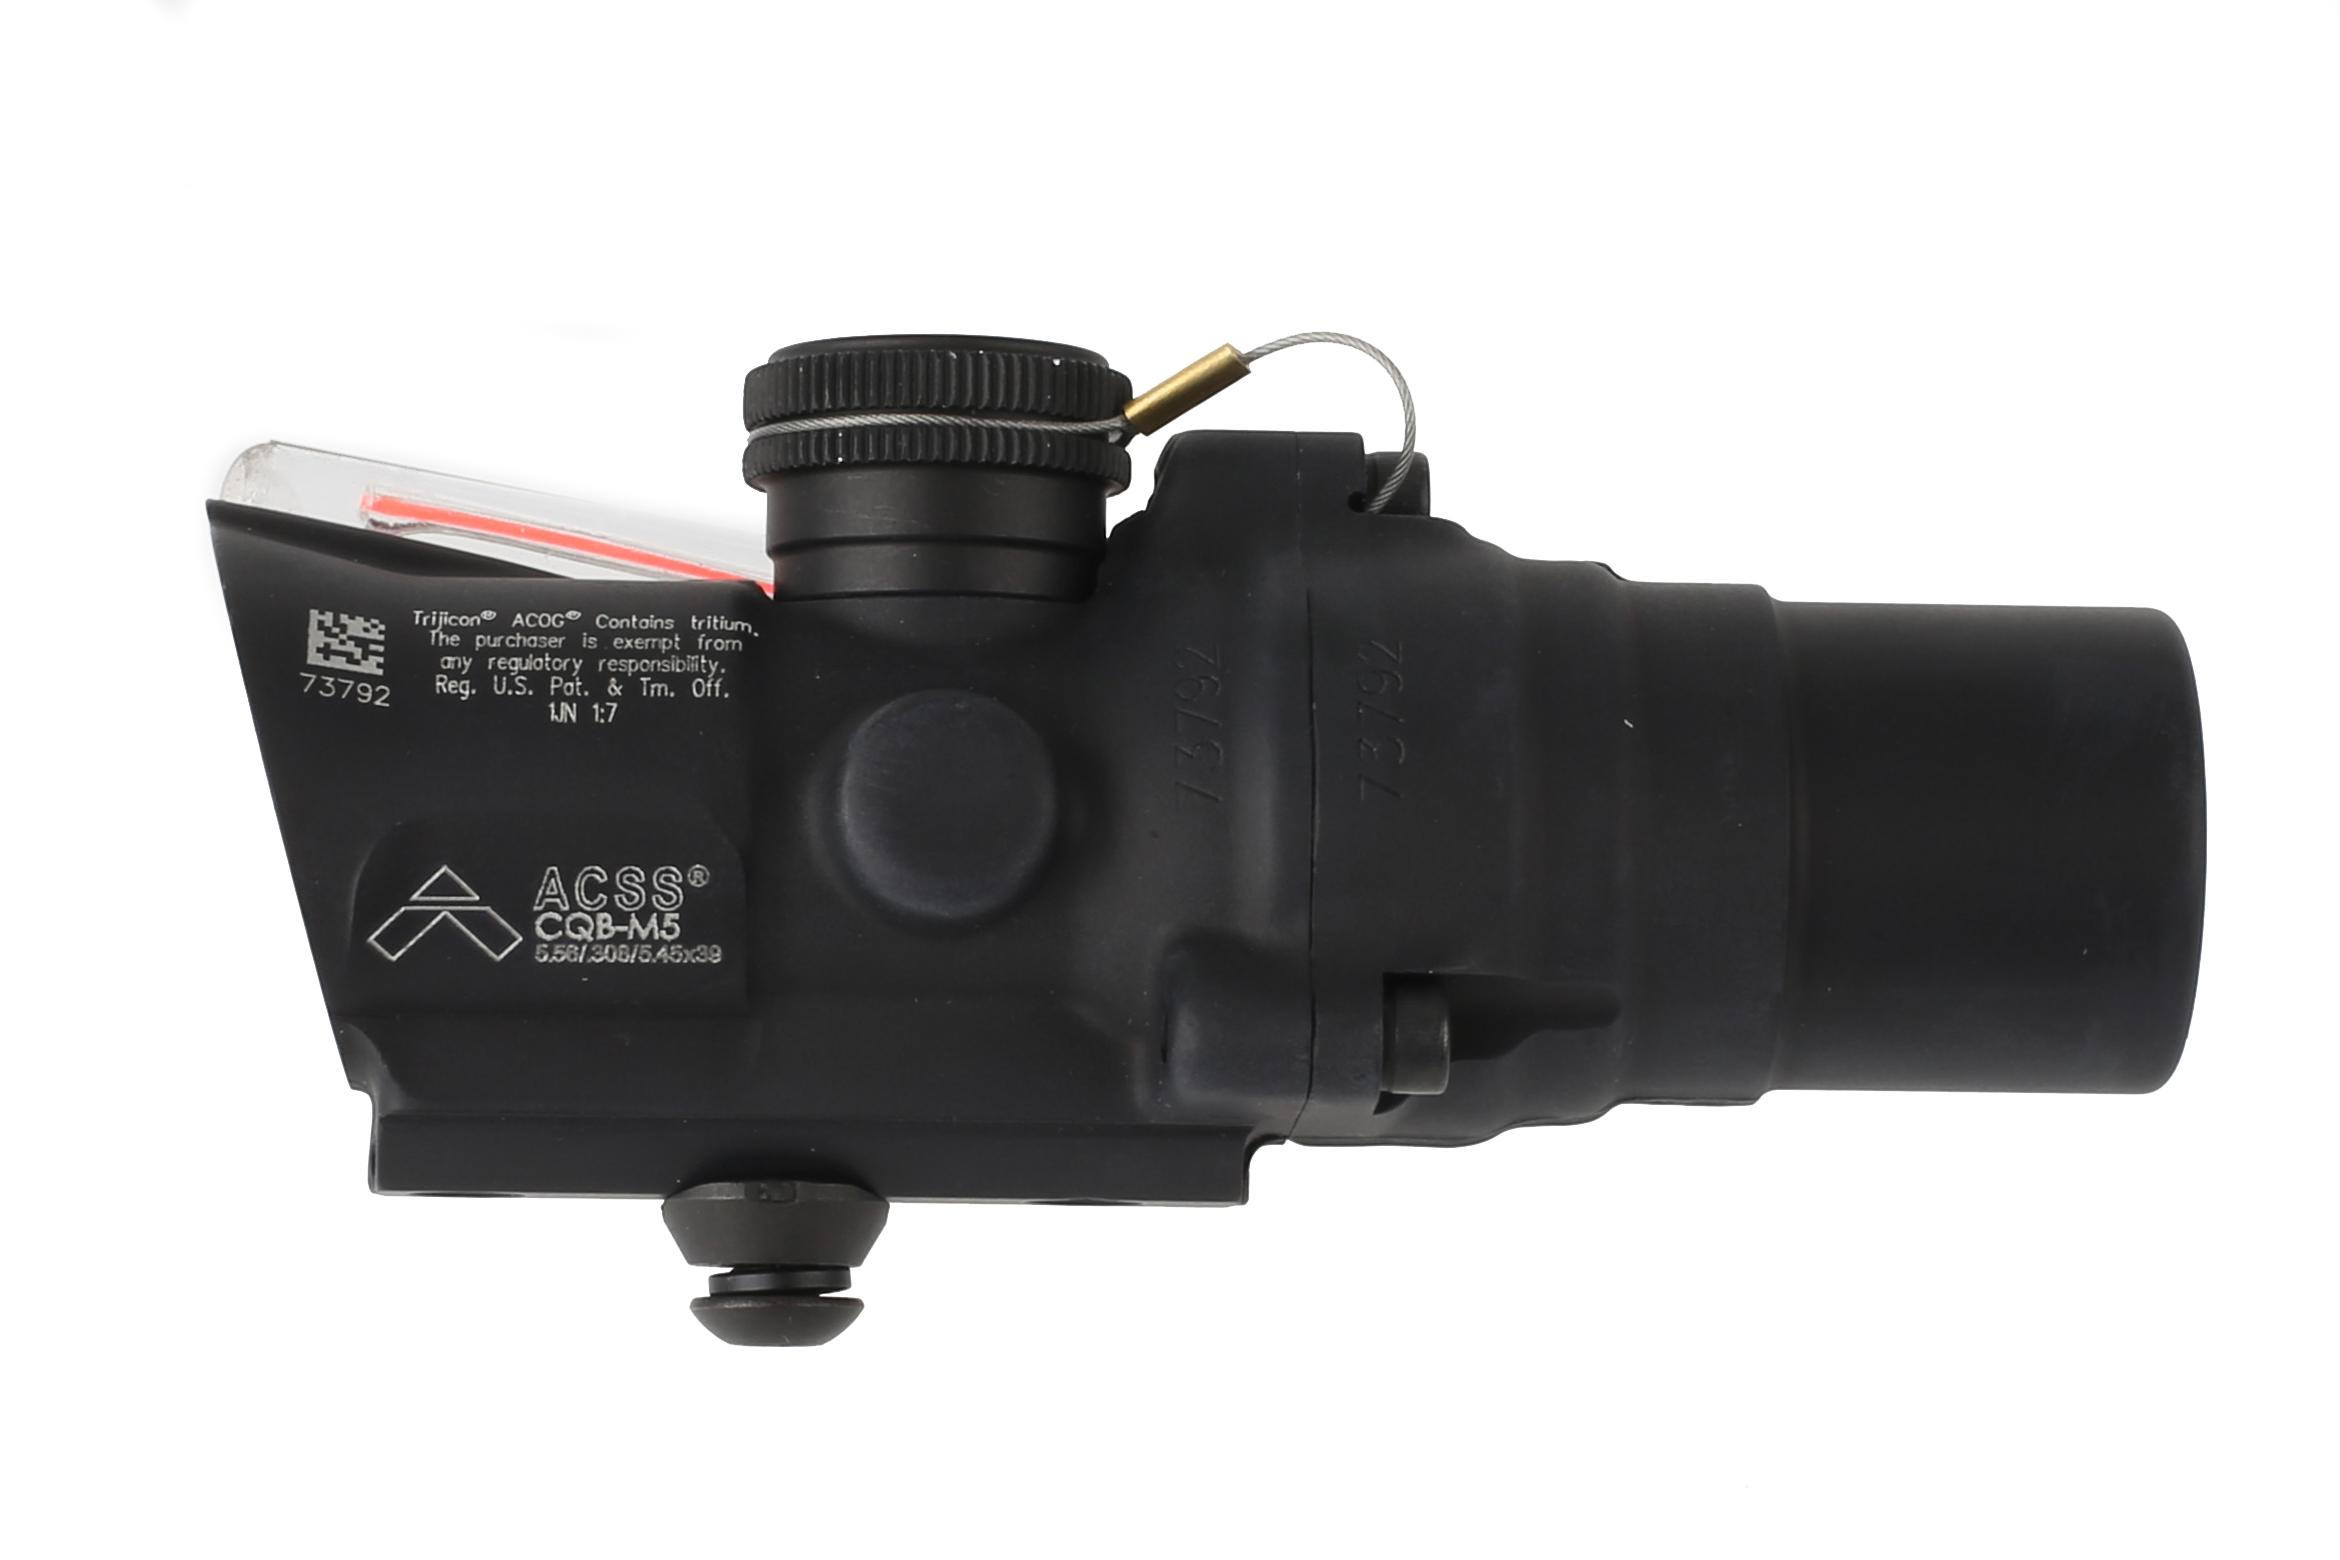 Trijicon ACOG 1.5x16S low with ACSS CQB-M5 reticle is a compact prism scope with exceptional glass clarity and red illumination